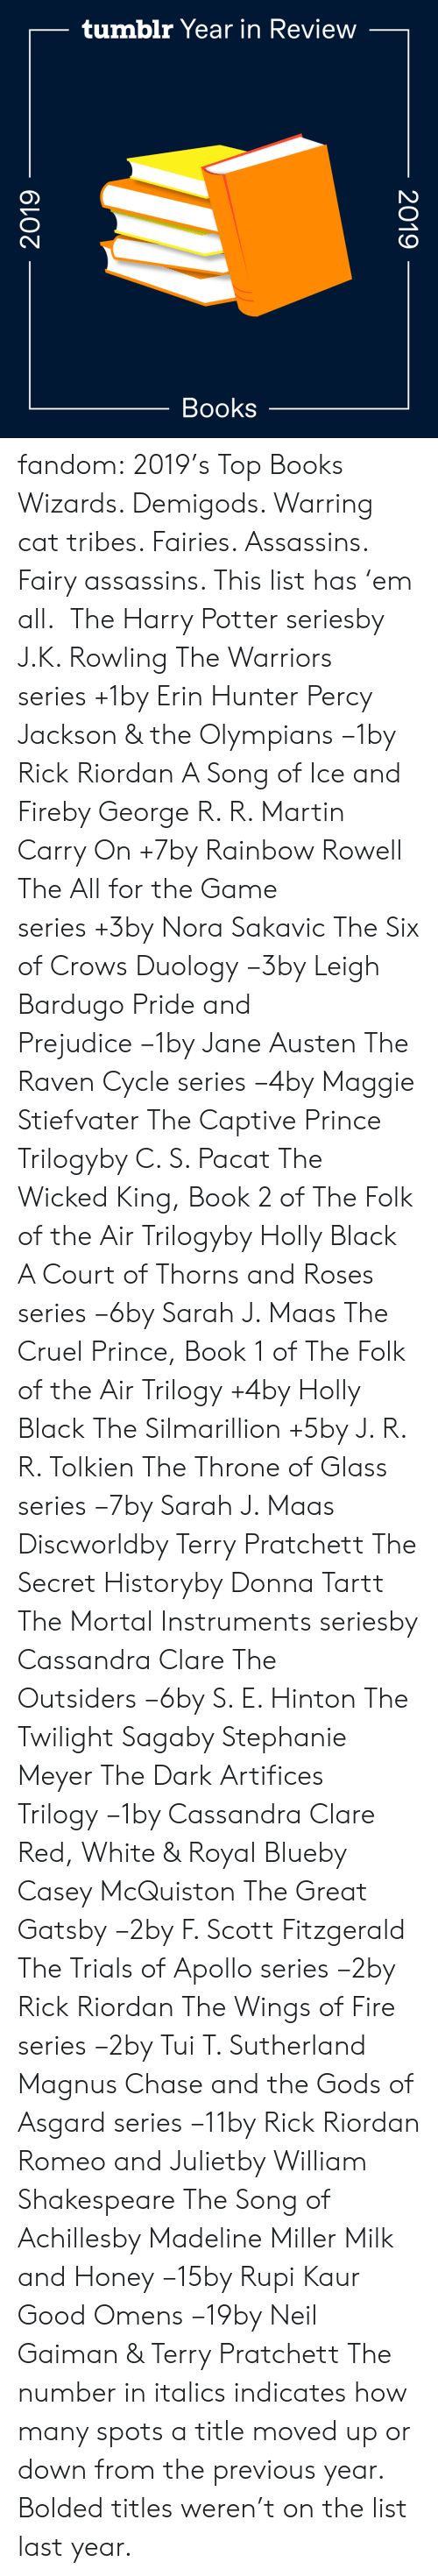 Prince: tumblr Year in Review  Books  2019  2019 fandom:  2019's Top Books  Wizards. Demigods. Warring cat tribes. Fairies. Assassins. Fairy assassins. This list has 'em all.   The Harry Potter seriesby J.K. Rowling  The Warriors series +1by Erin Hunter  Percy Jackson & the Olympians −1by Rick Riordan  A Song of Ice and Fireby George R. R. Martin  Carry On +7by Rainbow Rowell  The All for the Game series +3by Nora Sakavic  The Six of Crows Duology −3by Leigh Bardugo  Pride and Prejudice −1by Jane Austen  The Raven Cycle series −4by Maggie Stiefvater  The Captive Prince Trilogyby C. S. Pacat  The Wicked King, Book 2 of The Folk of the Air Trilogyby Holly Black  A Court of Thorns and Roses series −6by Sarah J. Maas  The Cruel Prince, Book 1 of The Folk of the Air Trilogy +4by Holly Black  The Silmarillion +5by J. R. R. Tolkien  The Throne of Glass series −7by Sarah J. Maas  Discworldby Terry Pratchett  The Secret Historyby Donna Tartt  The Mortal Instruments seriesby Cassandra Clare  The Outsiders −6by S. E. Hinton  The Twilight Sagaby Stephanie Meyer  The Dark Artifices Trilogy −1by Cassandra Clare  Red, White & Royal Blueby Casey McQuiston  The Great Gatsby −2by F. Scott Fitzgerald  The Trials of Apollo series −2by Rick Riordan  The Wings of Fire series −2by Tui T. Sutherland  Magnus Chase and the Gods of Asgard series −11by Rick Riordan  Romeo and Julietby William Shakespeare  The Song of Achillesby Madeline Miller  Milk and Honey −15by Rupi Kaur  Good Omens −19by Neil Gaiman & Terry Pratchett The number in italics indicates how many spots a title moved up or down from the previous year. Bolded titles weren't on the list last year.